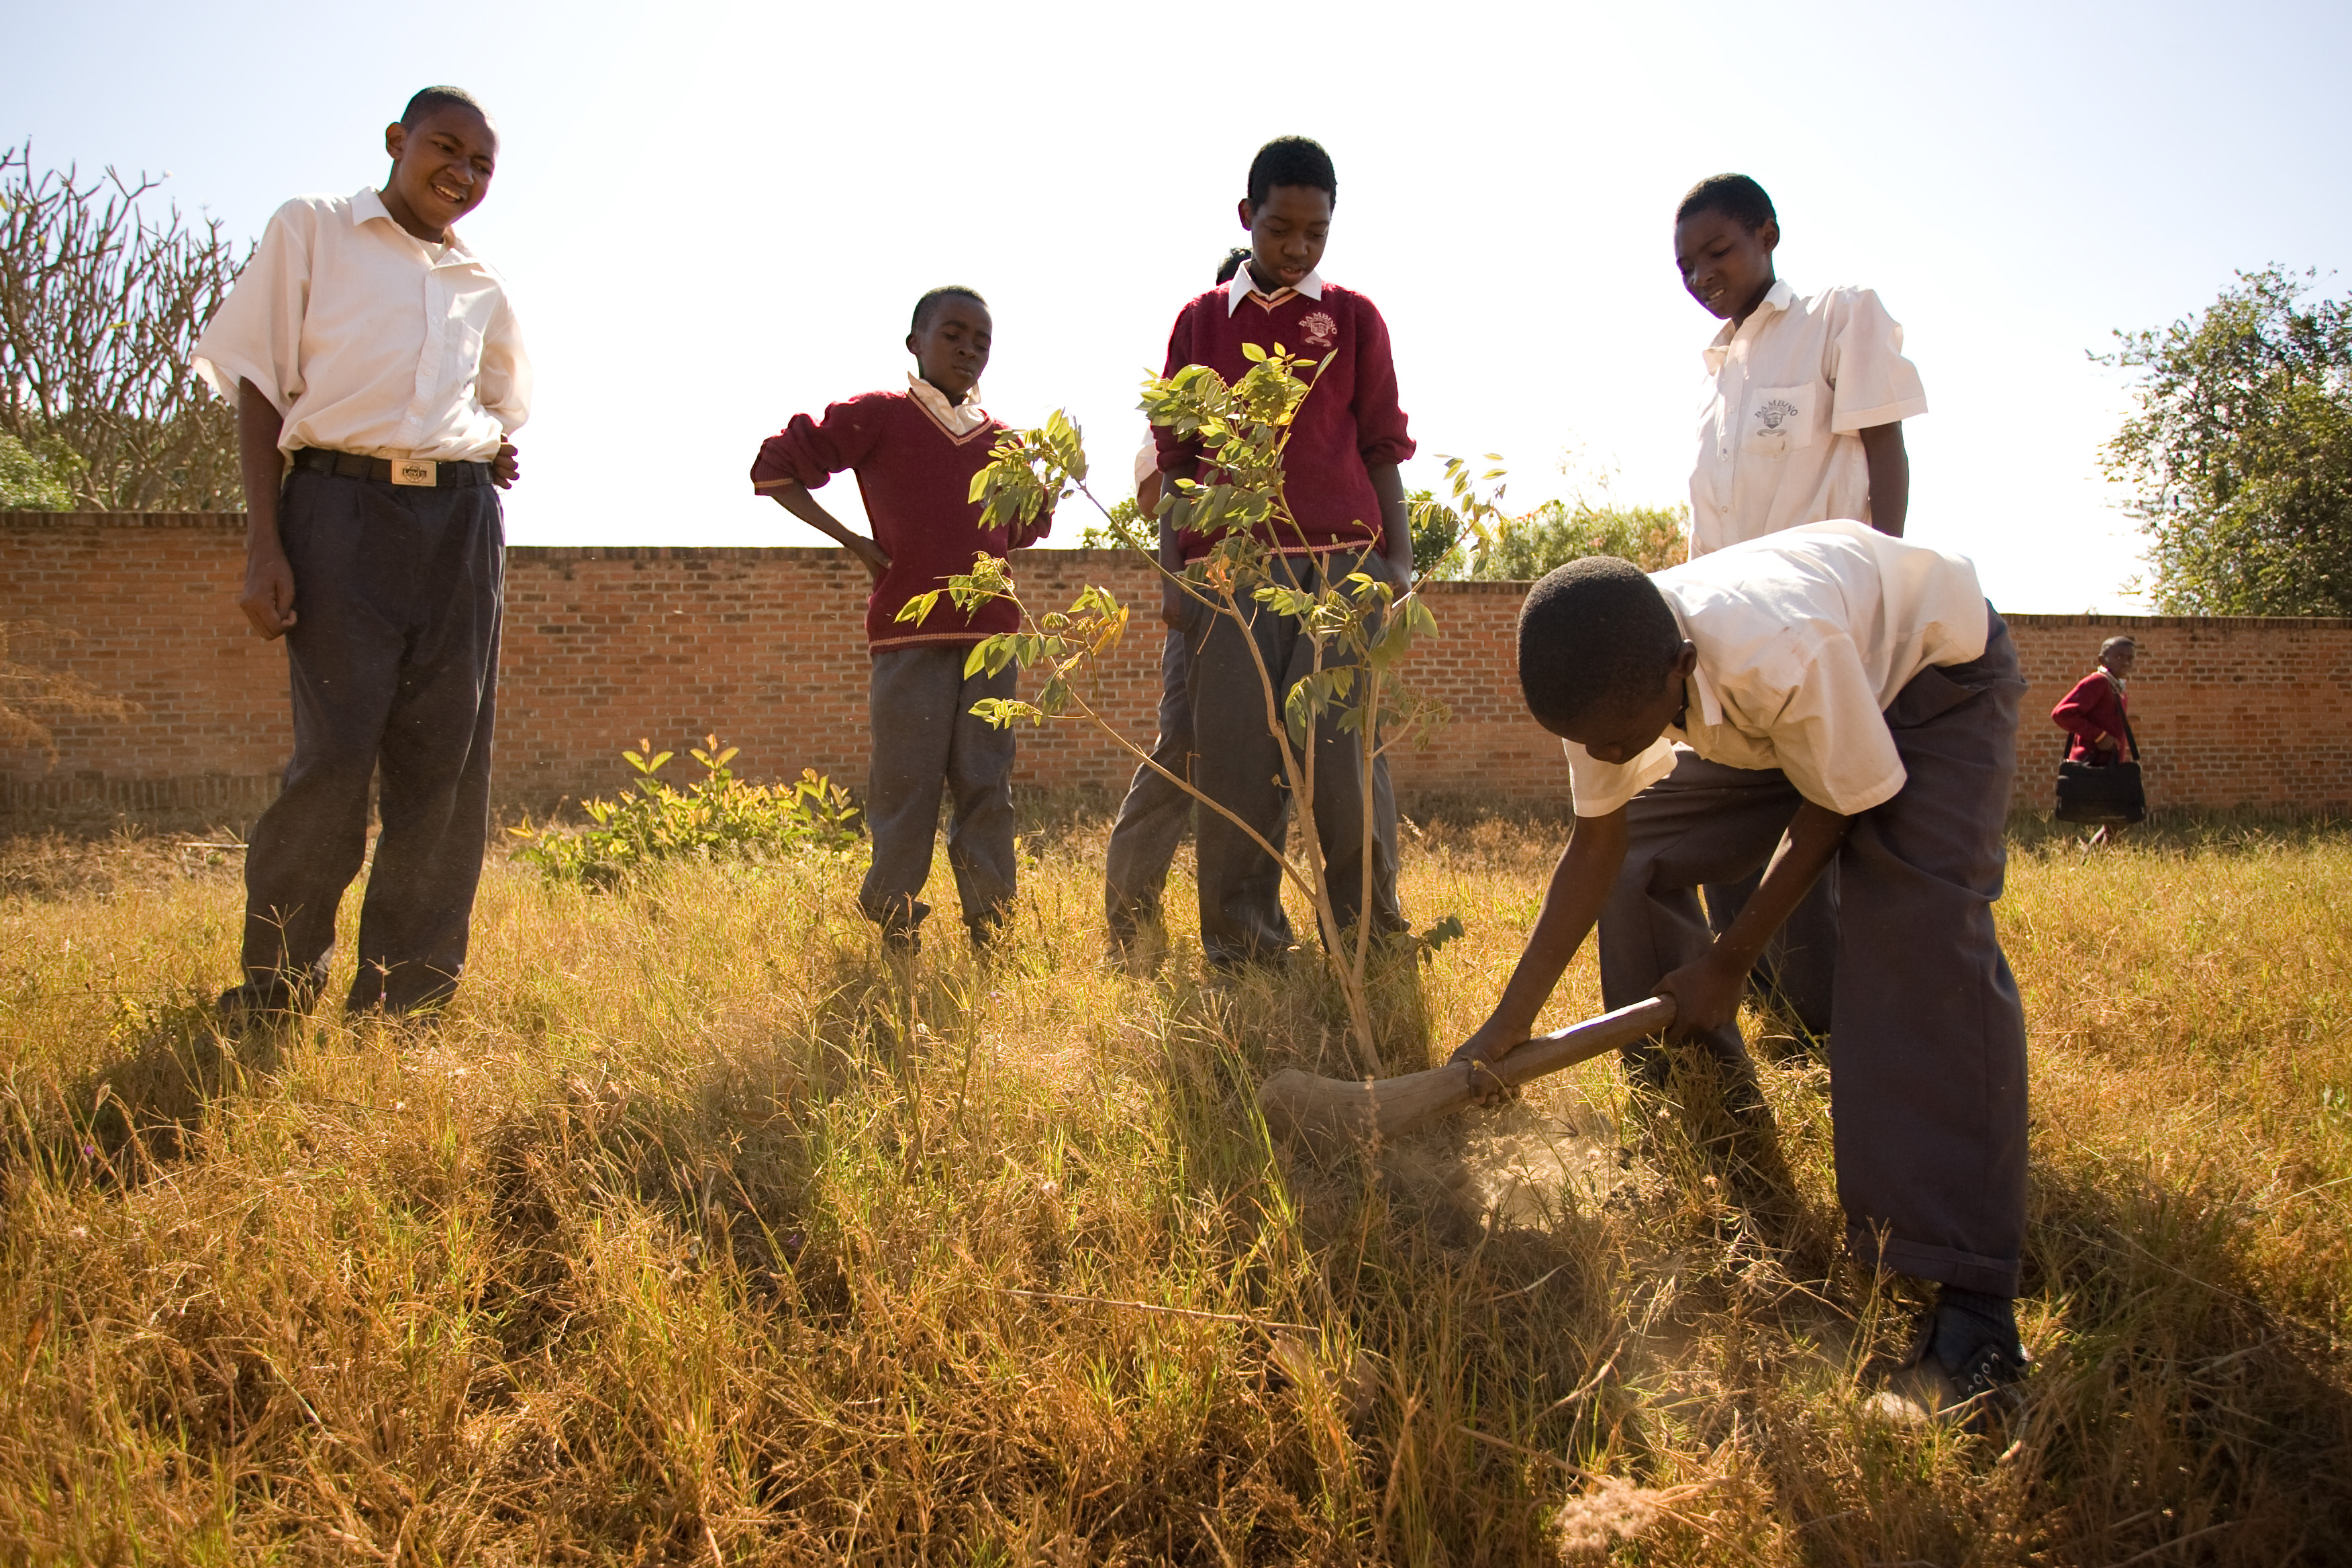 Students at Bambino School, a Bahá'í-inspired school in Lilongwe, Malawi plant a tree outside the school as part of a service project